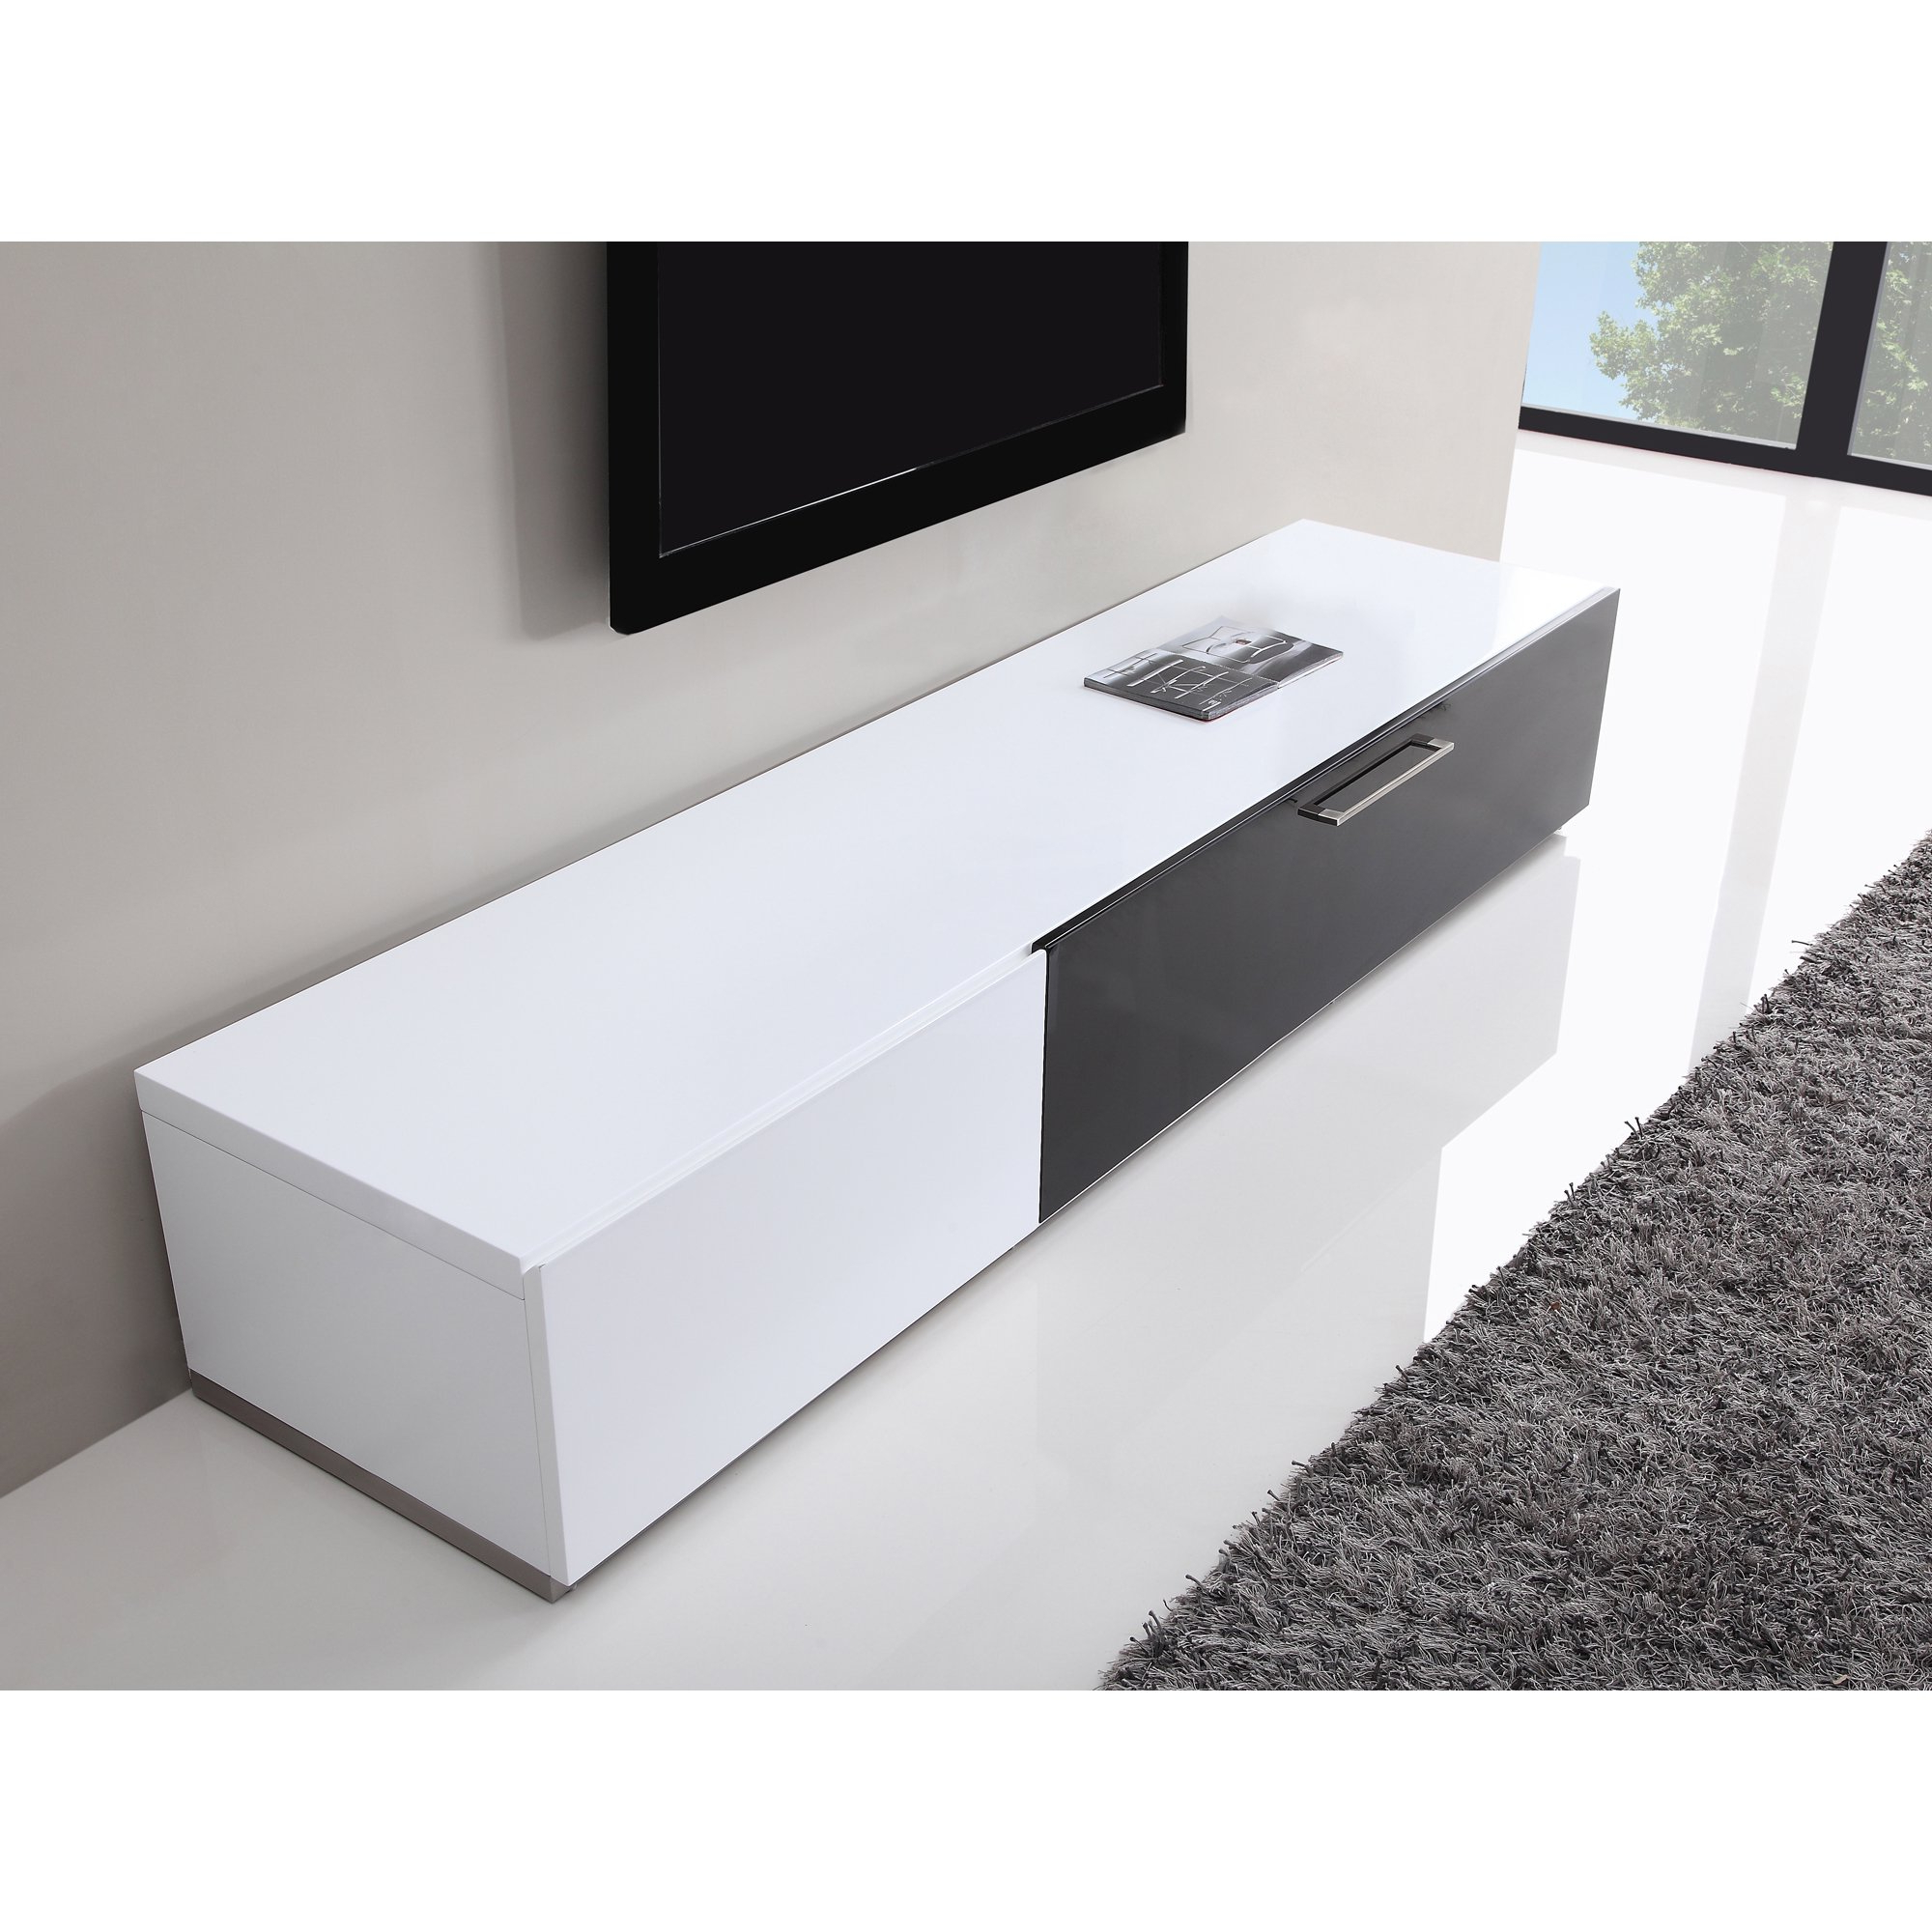 Shop B Modern Producer White/ Black Modern Tv Stand With Ir Glass Intended For Well Known Modern White Lacquer Tv Stands (Gallery 18 of 20)